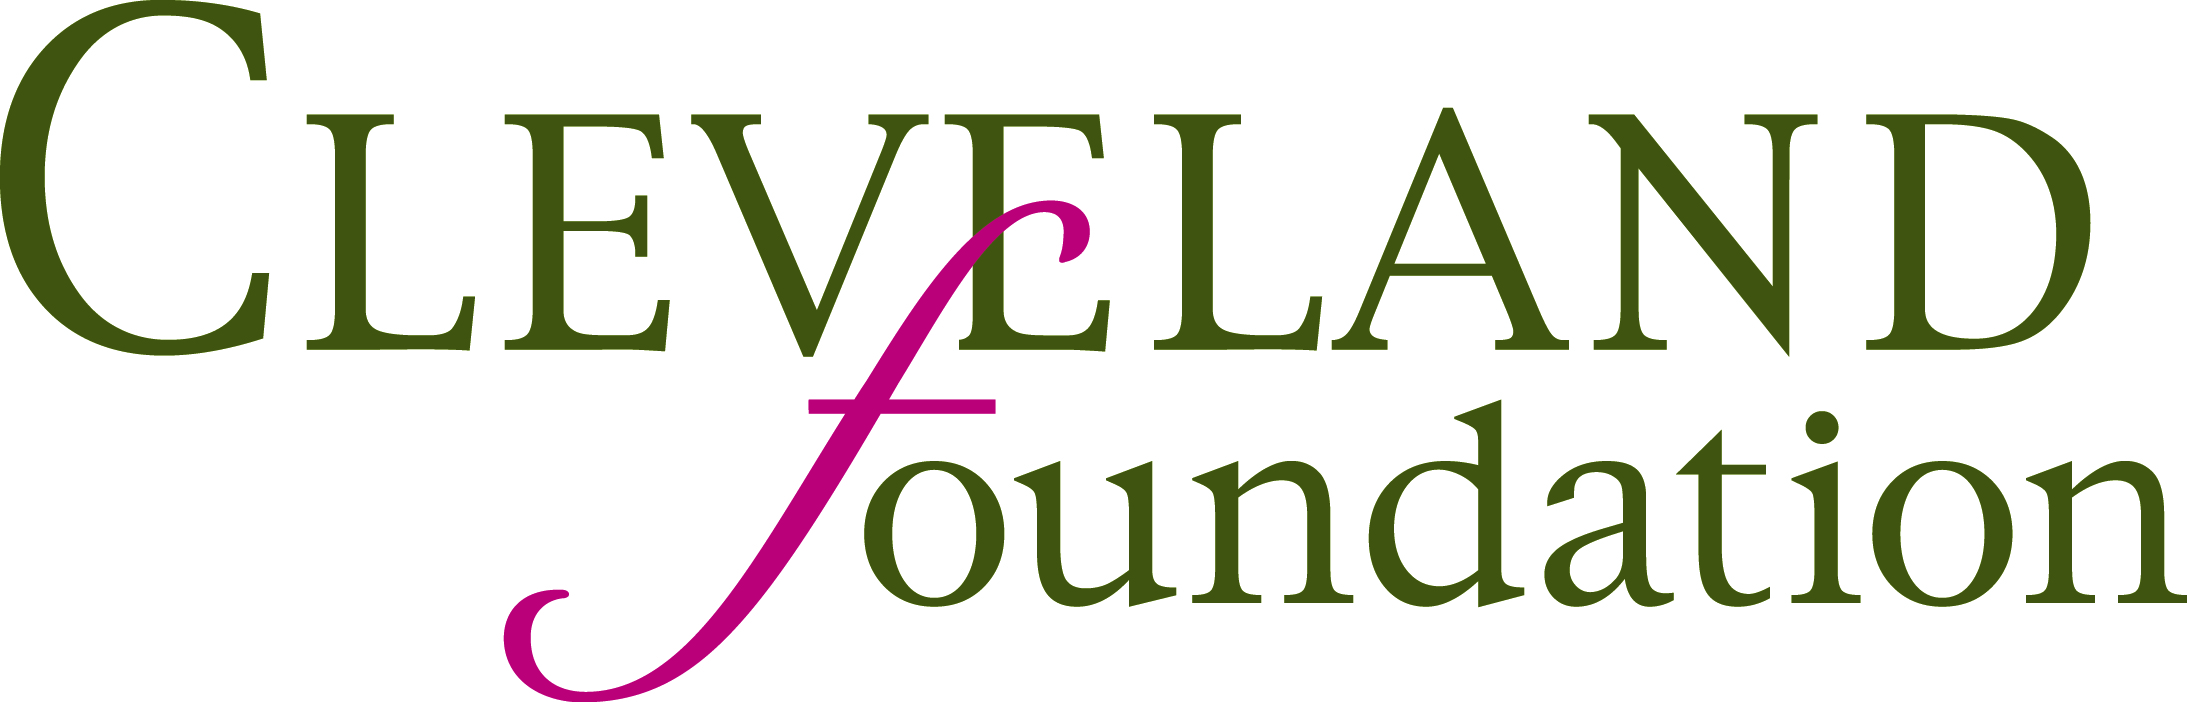 Cleveland Foundation logo color 03.02.15